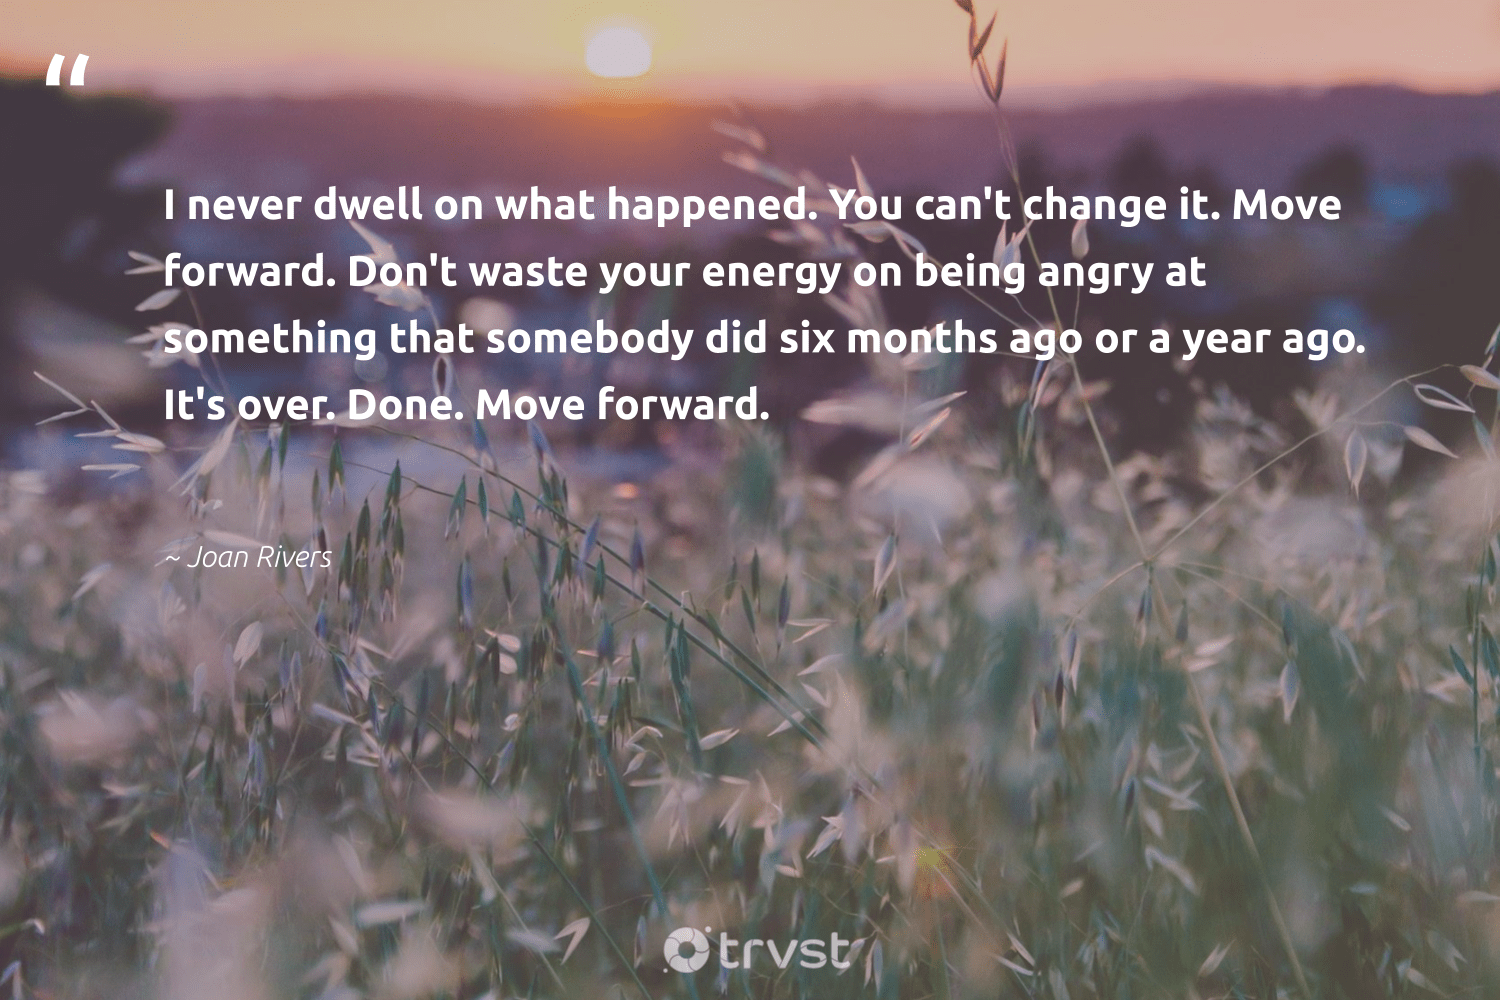 """I never dwell on what happened. You can't change it. Move forward. Don't waste your energy on being angry at something that somebody did six months ago or a year ago. It's over. Done. Move forward.""  - Joan Rivers #trvst #quotes #waste #energy #begreat #bethechange #mindset #planetearthfirst #health #gogreen #changemakers #collectiveaction"